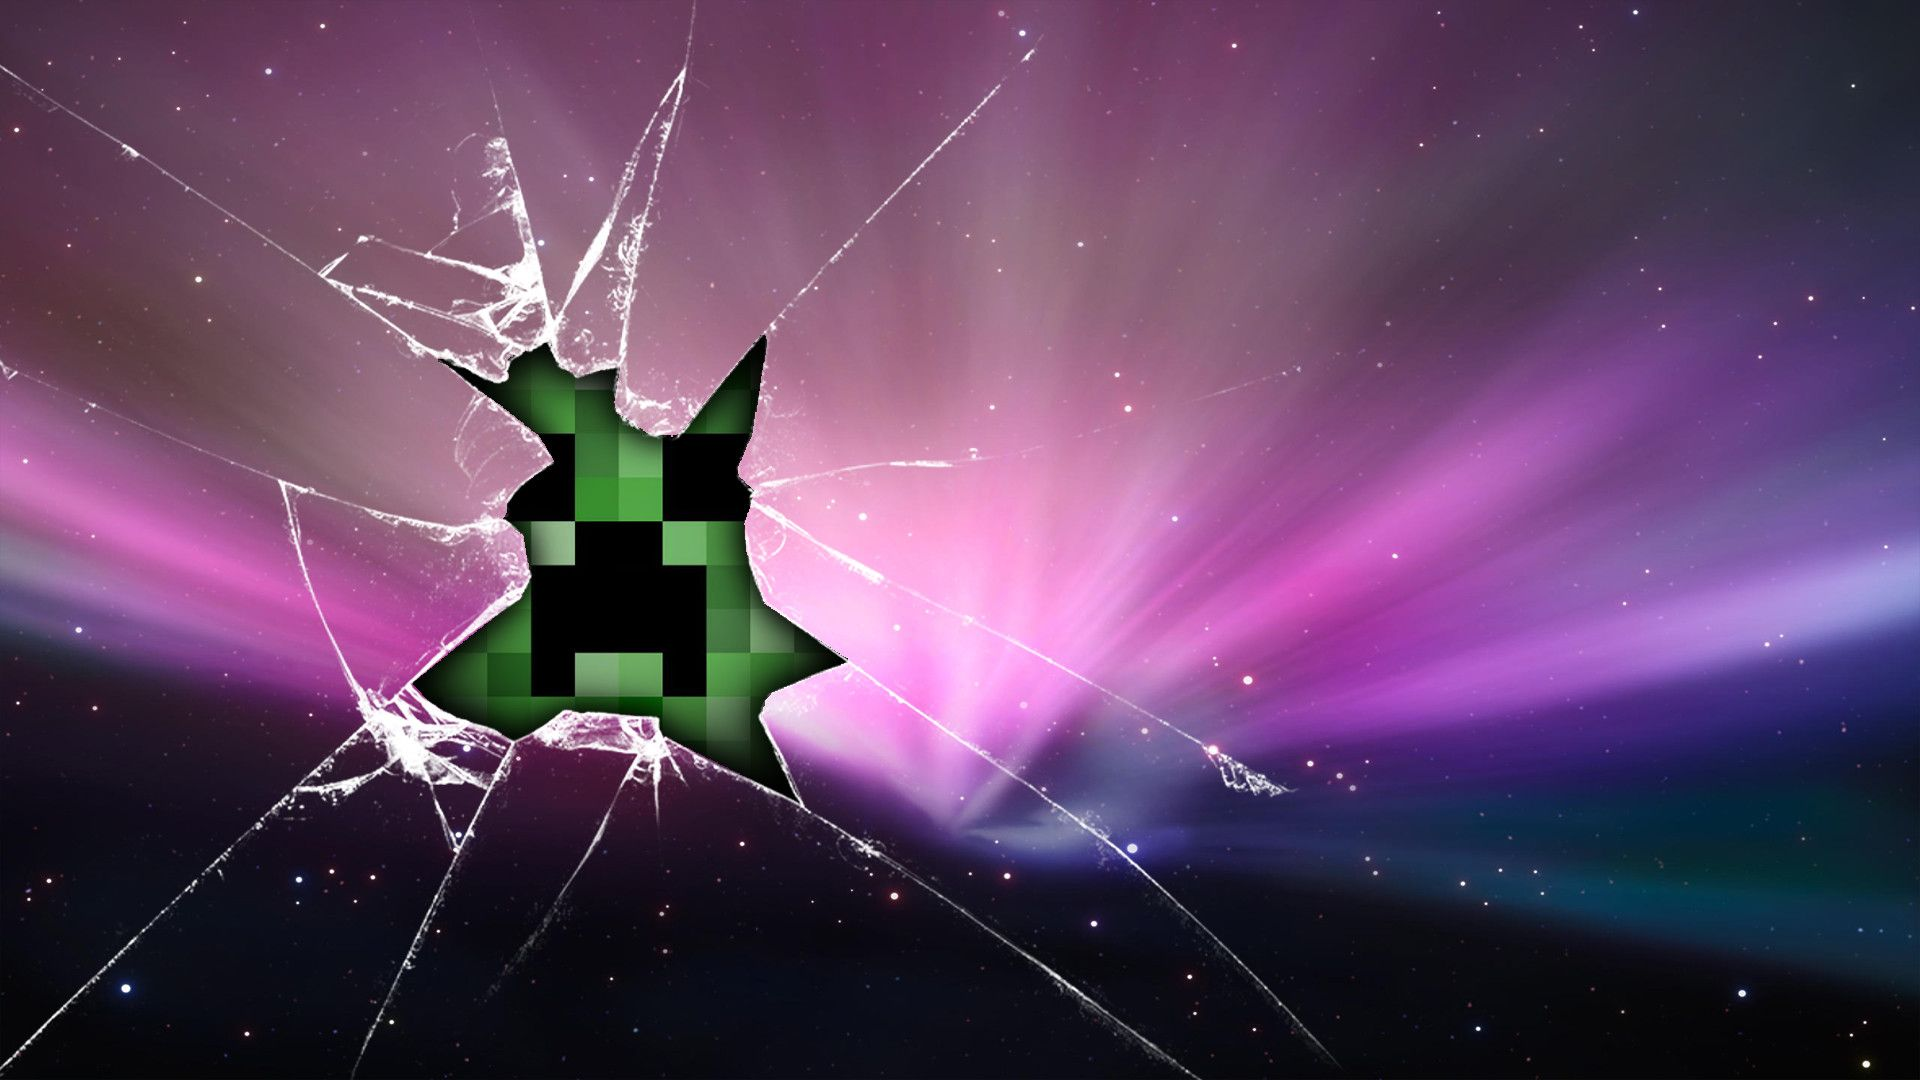 Cracked Screen Minecraft Wallpaper Creeper